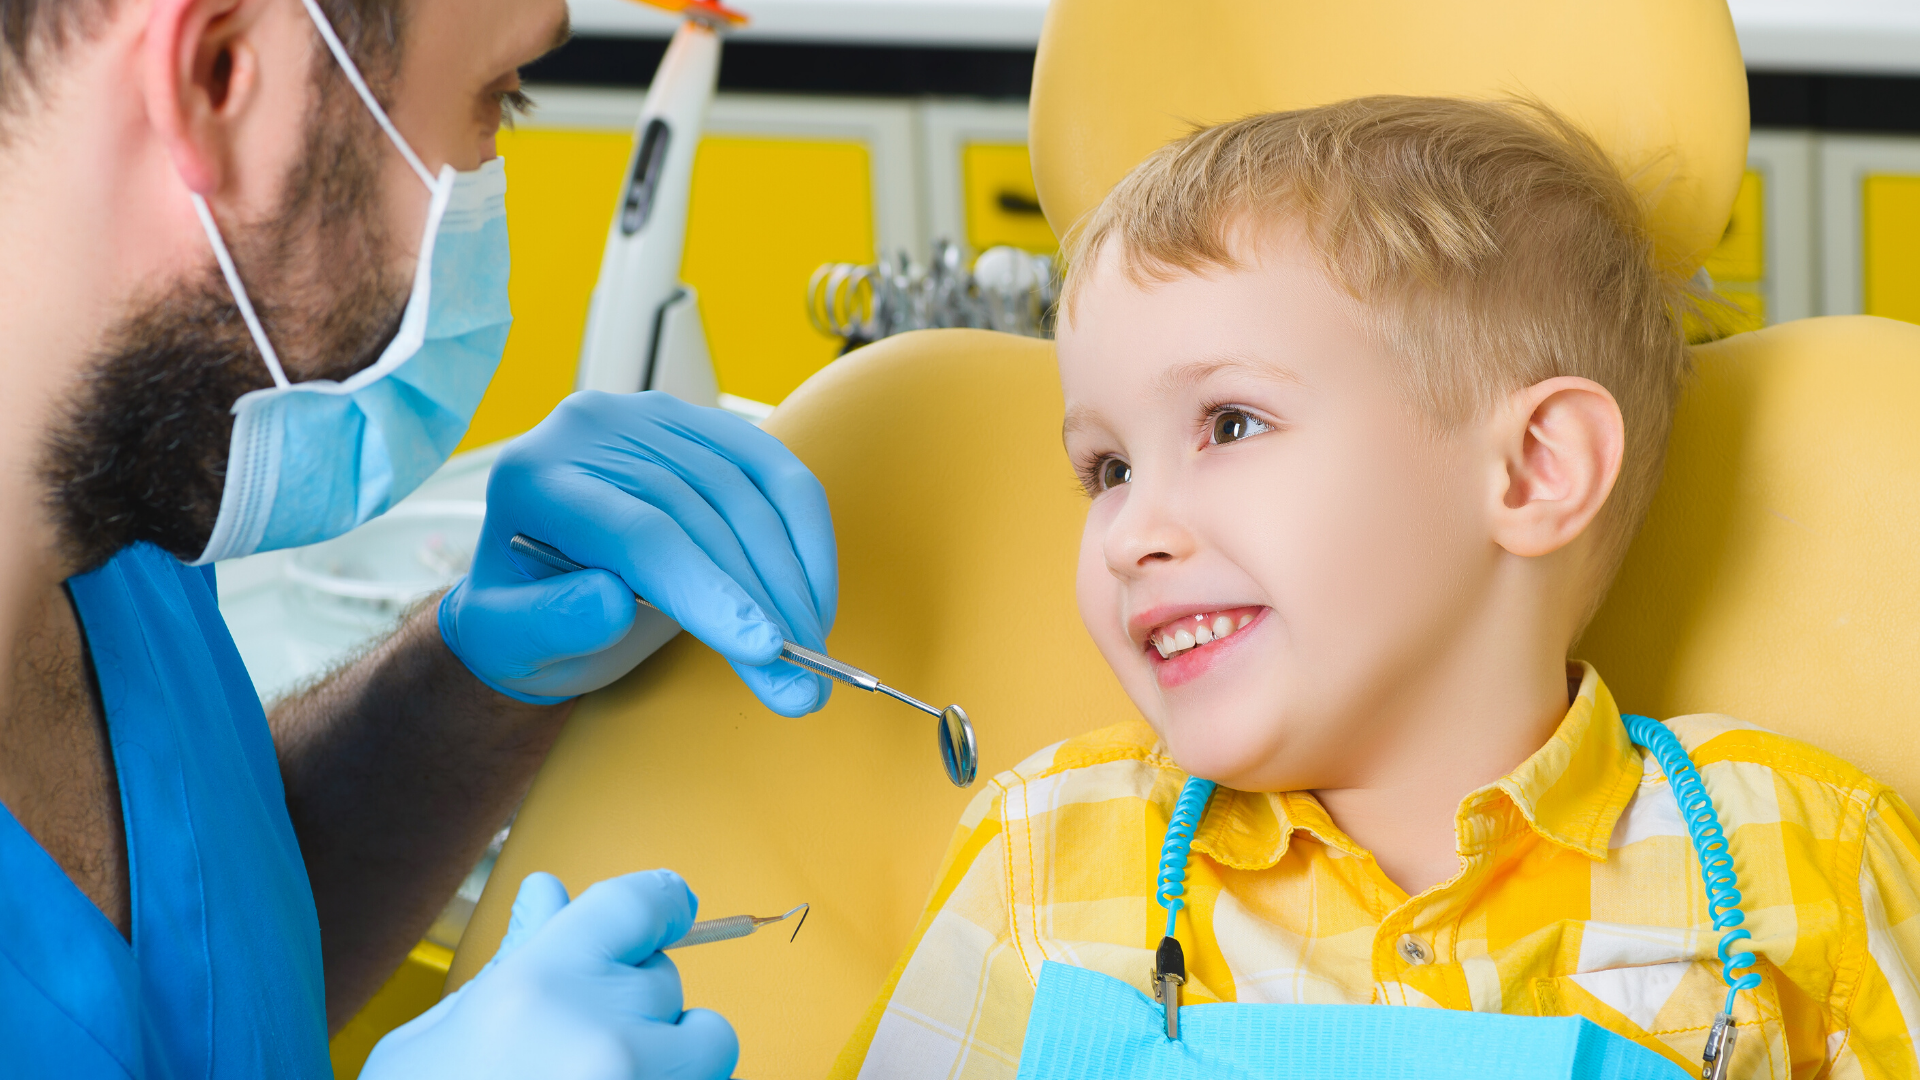 4 things to consider when finding a pediatric dentist